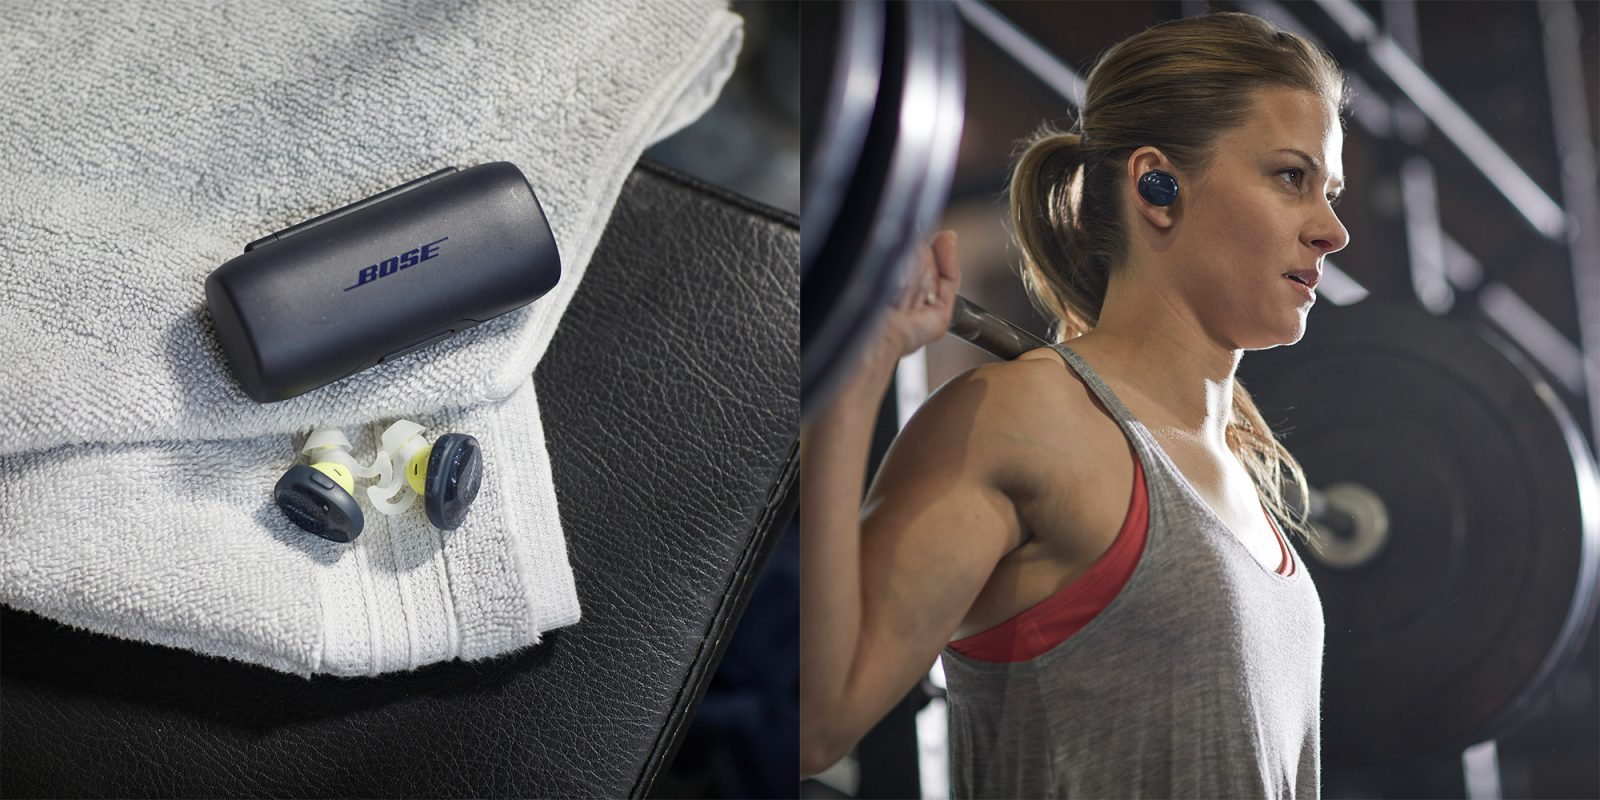 Bose unveils new SoundSport Free truly wireless earbuds geared towards active lifestyles